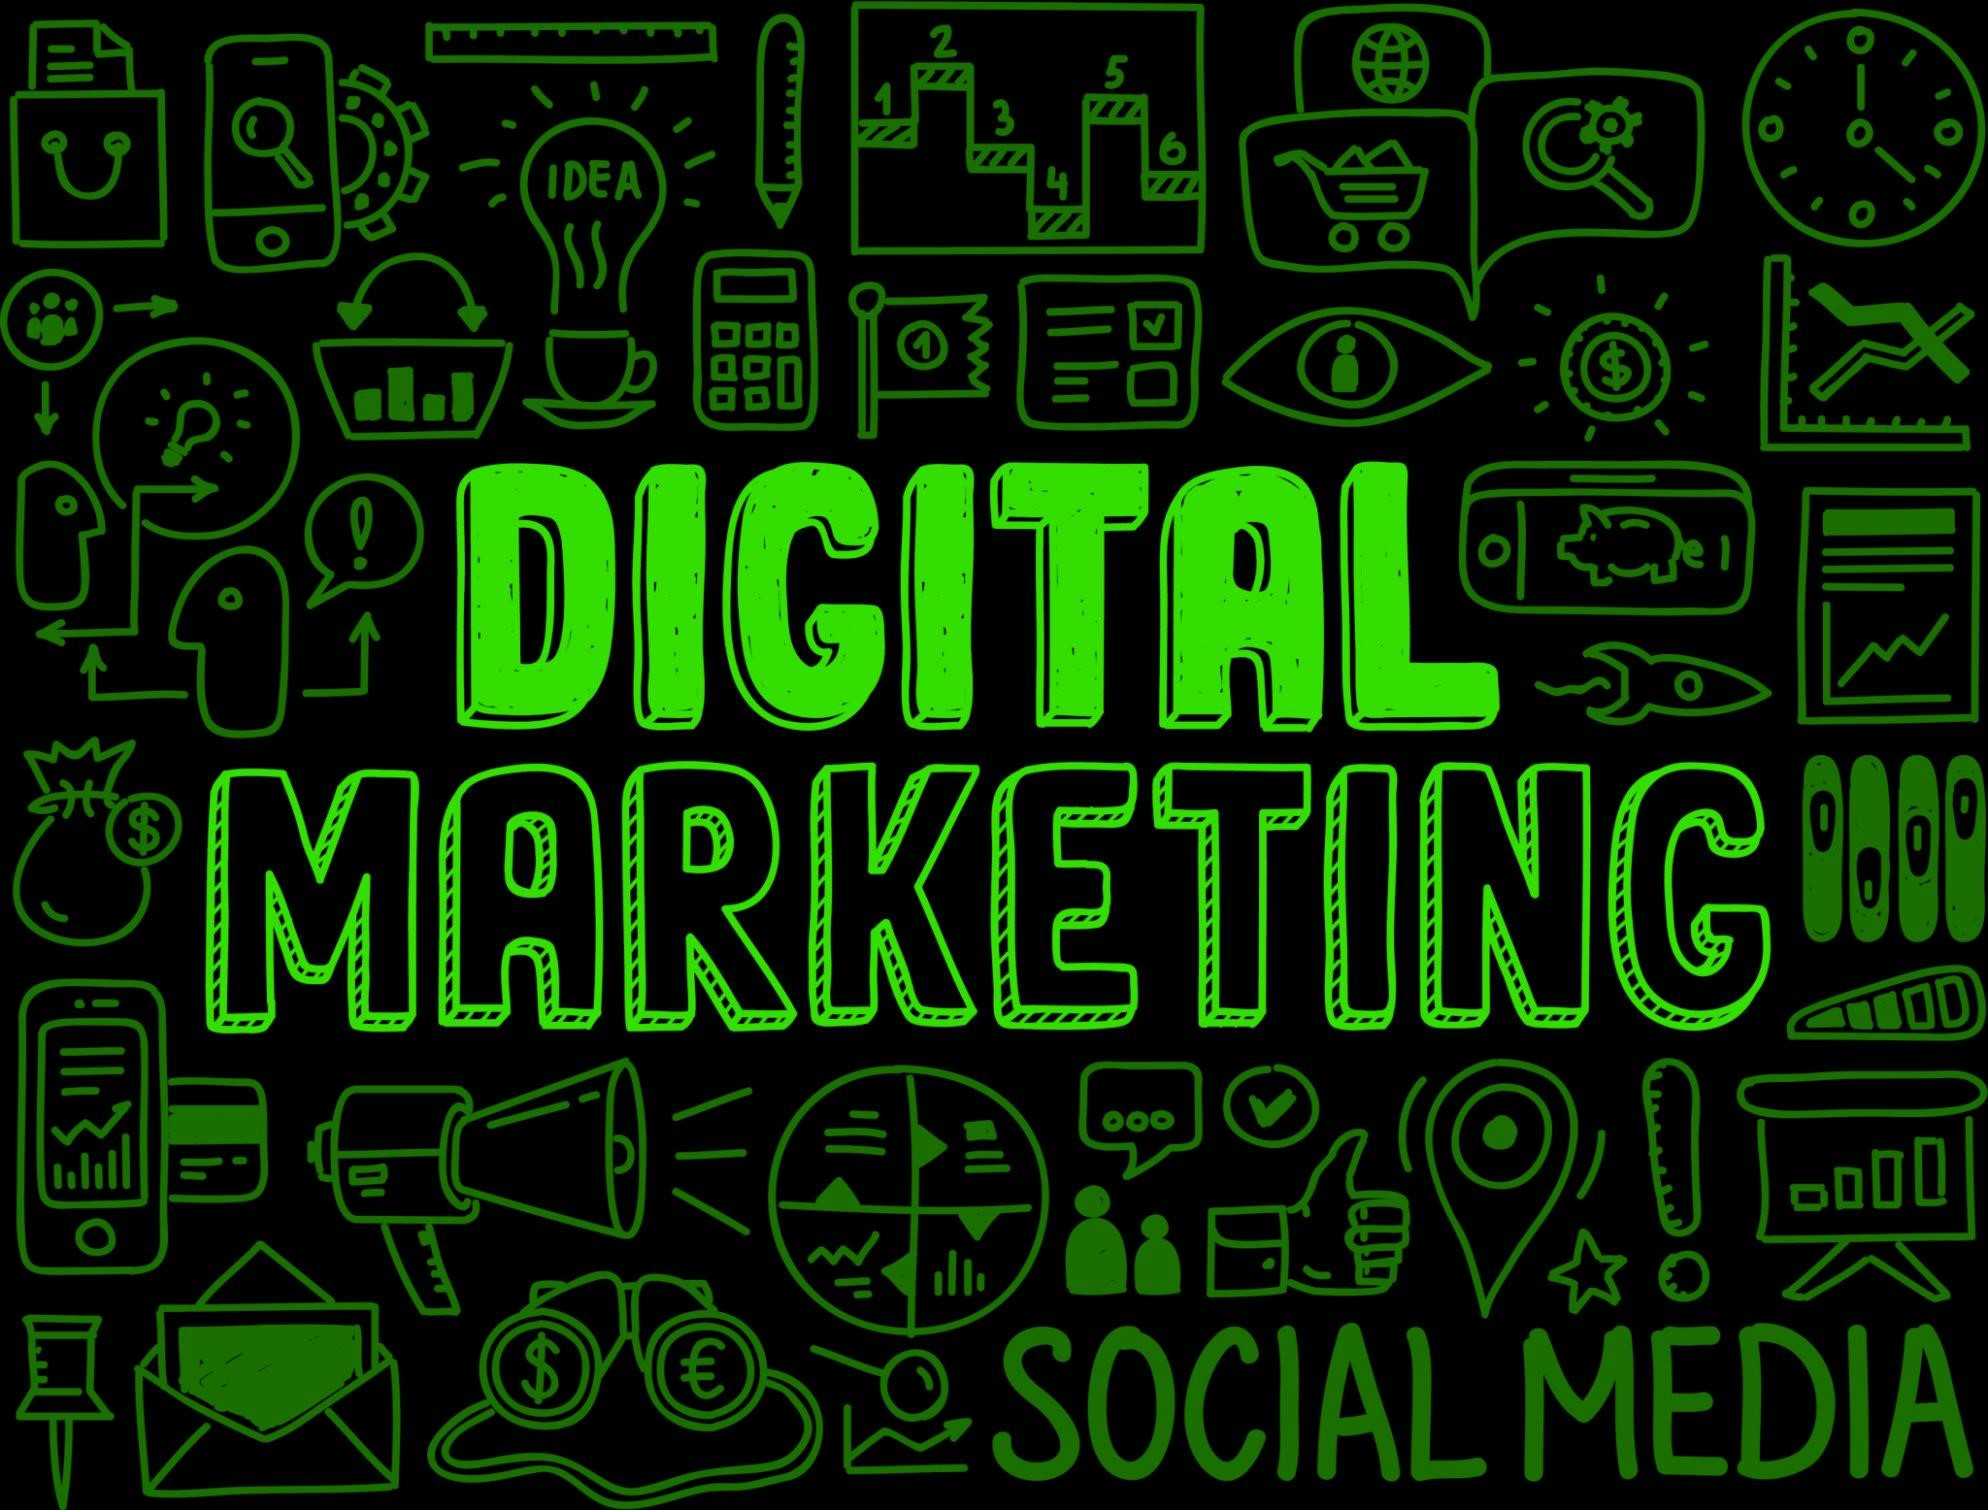 digital marketing jargon image - green